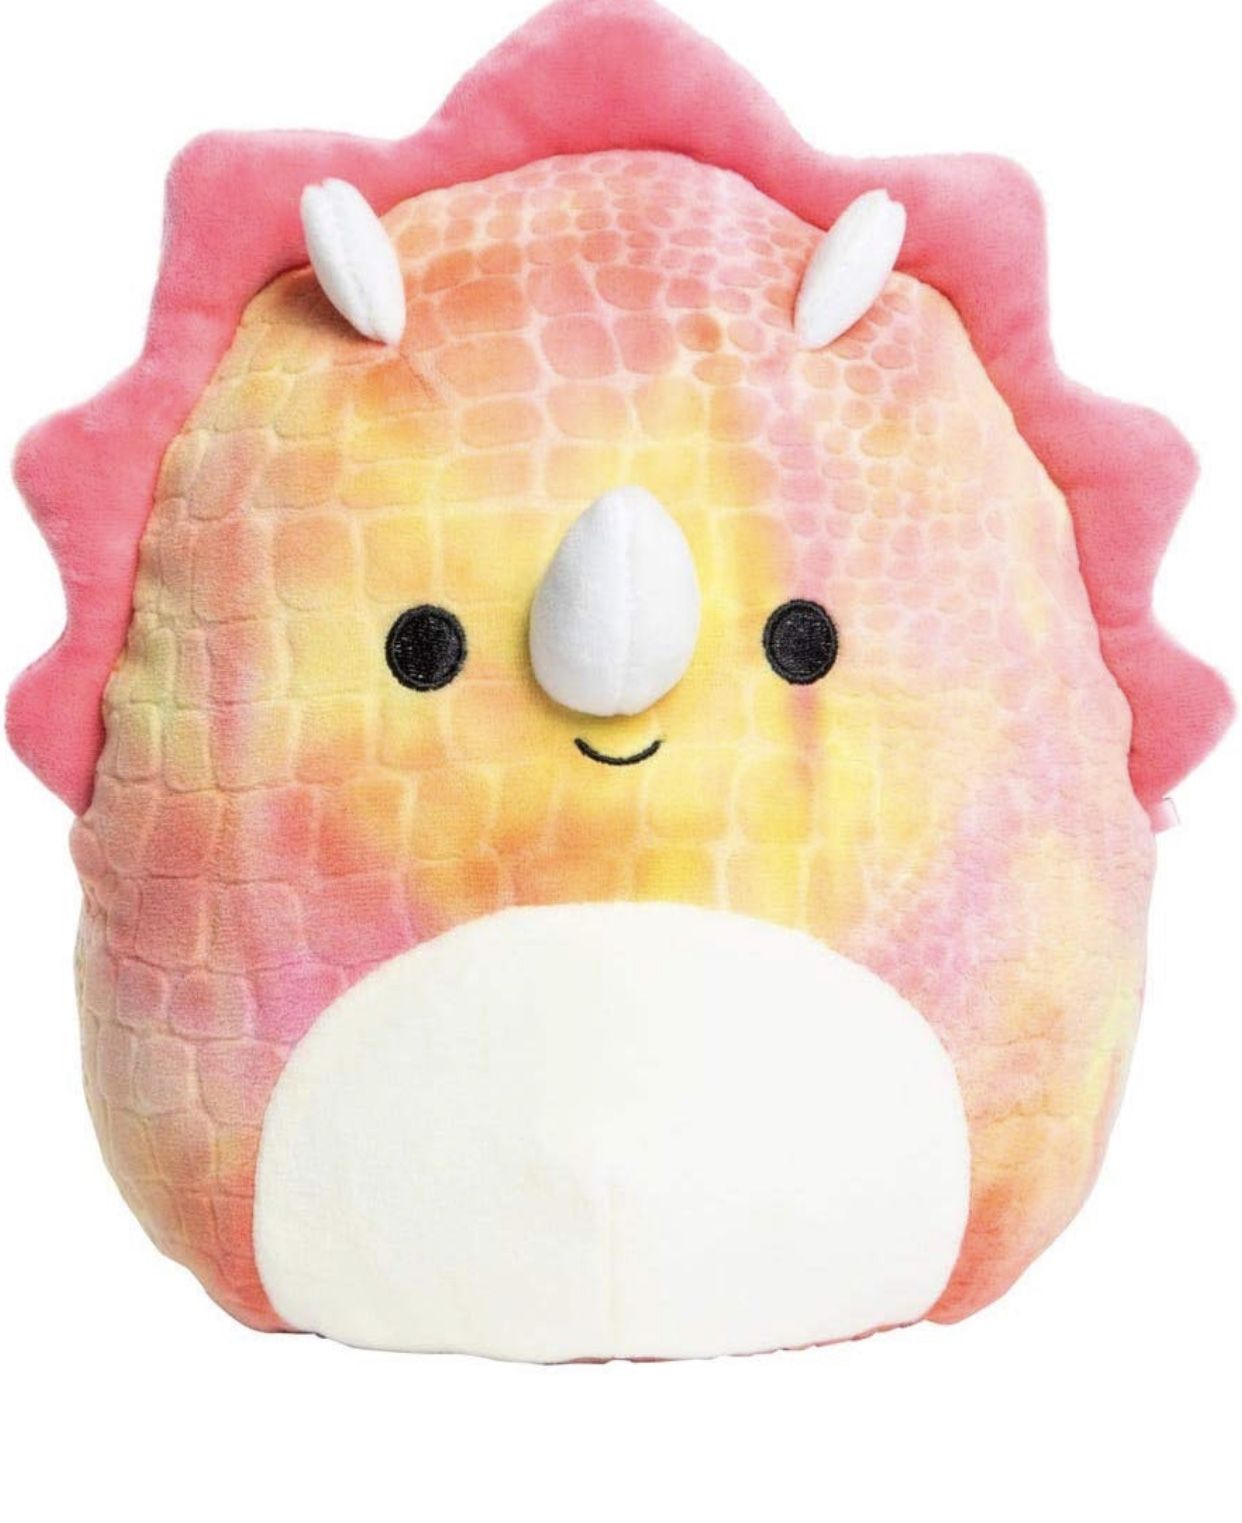 Squishmallow 8 Inch Triceratops Animal Pillows Cute Stuffed Animals Cute Plush